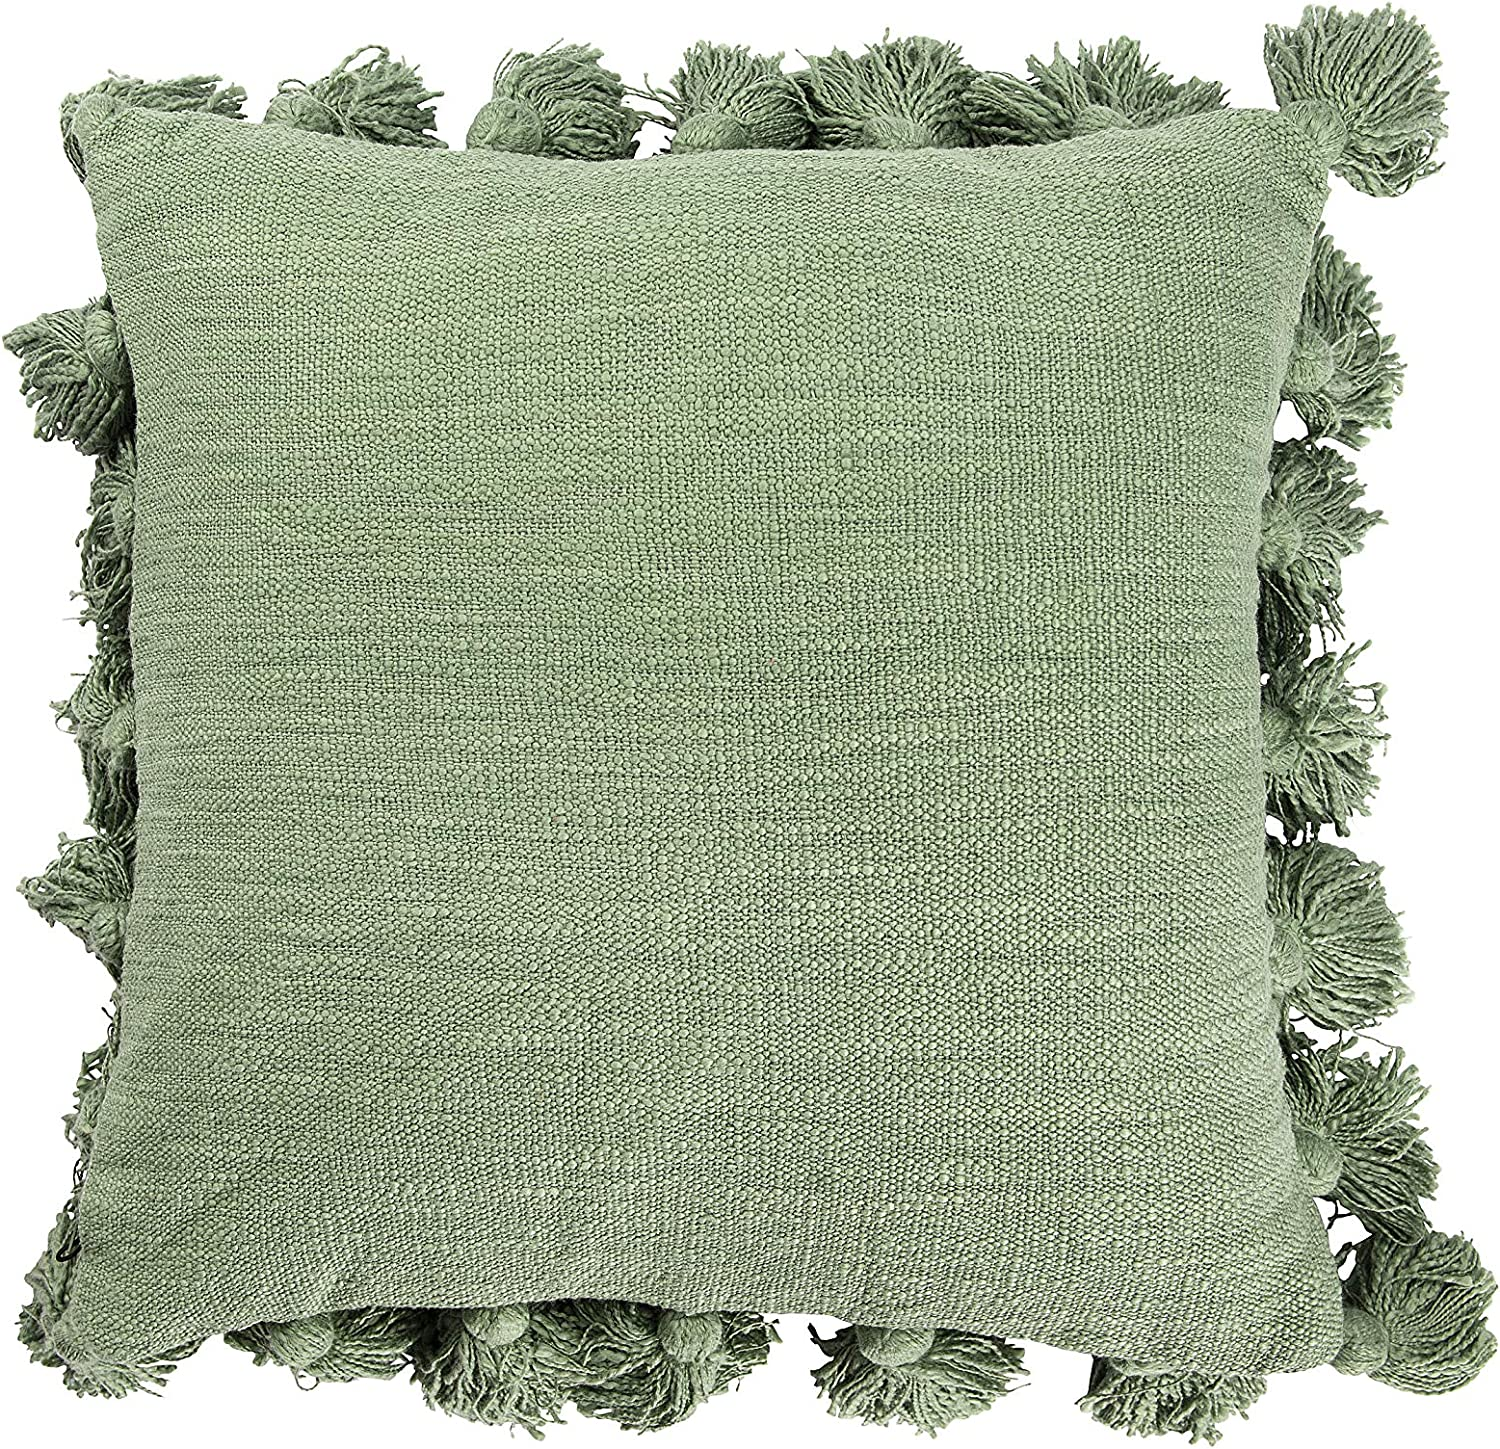 Special price for a limited time Creative New York Mall Co-Op Square Cotton Pillow Green with Tassels